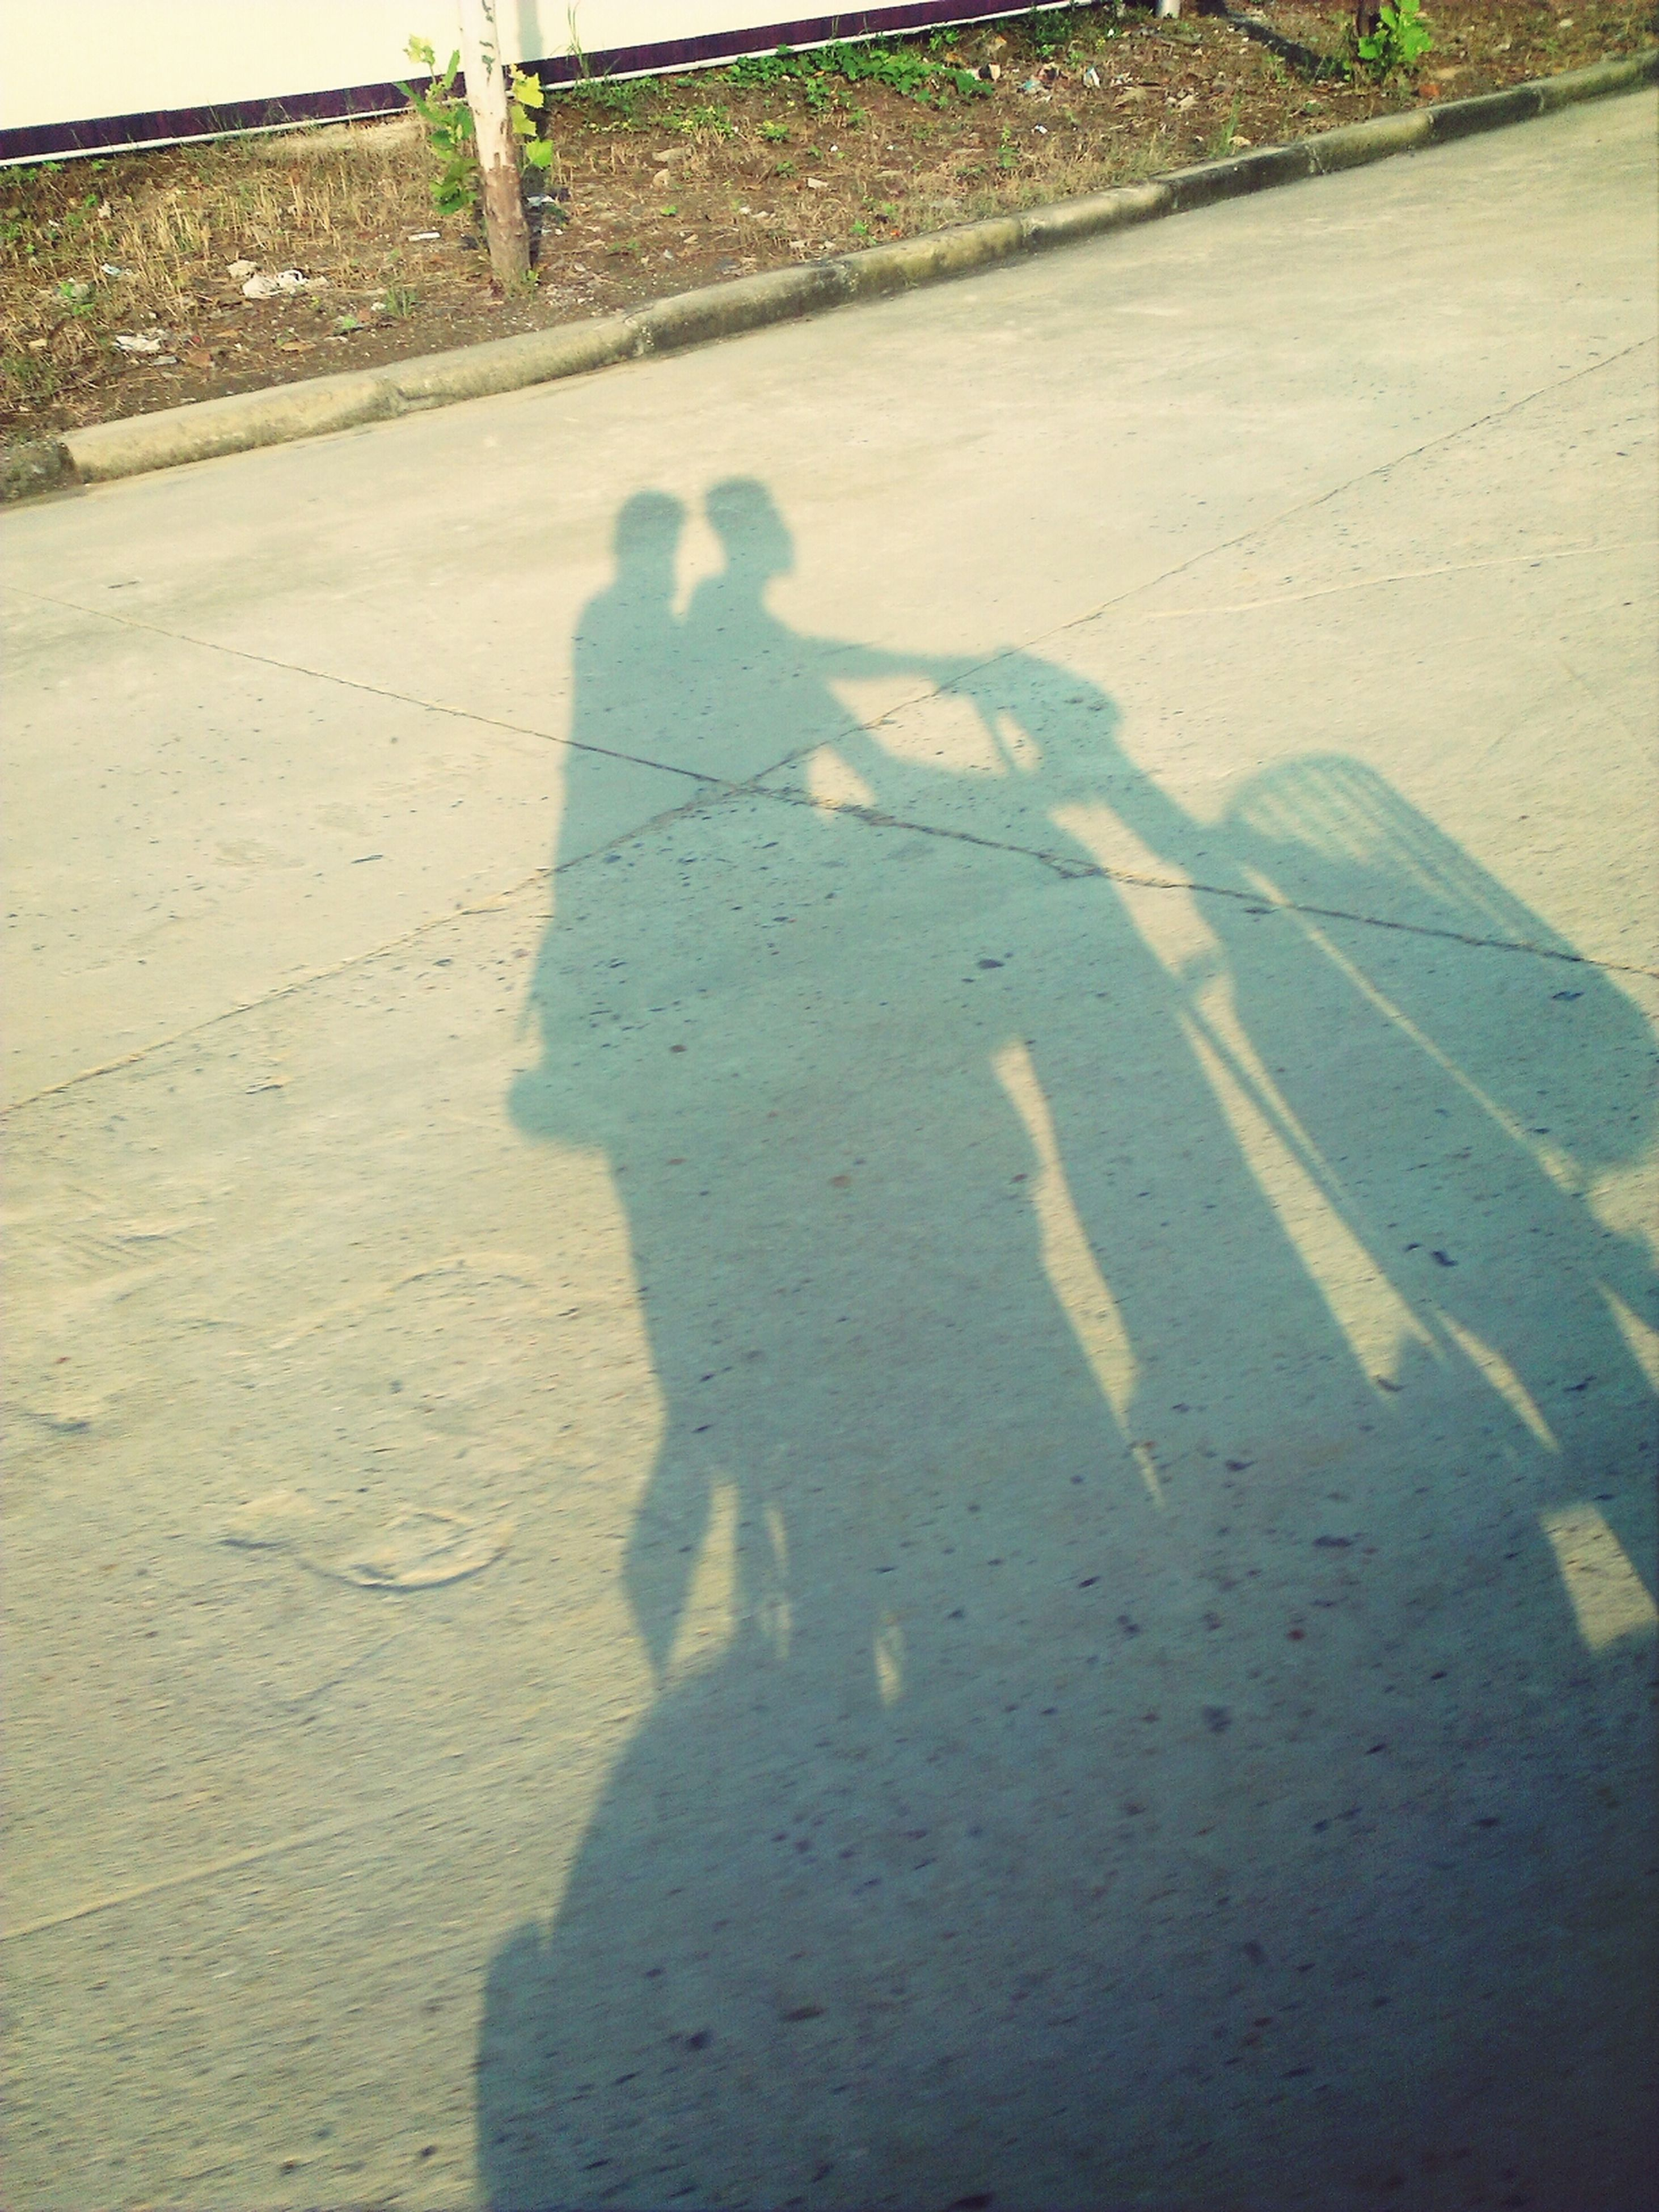 shadow, road, sunlight, high angle view, street, asphalt, road marking, transportation, day, outdoors, the way forward, guidance, focus on shadow, built structure, no people, grass, sunny, architecture, direction, textured